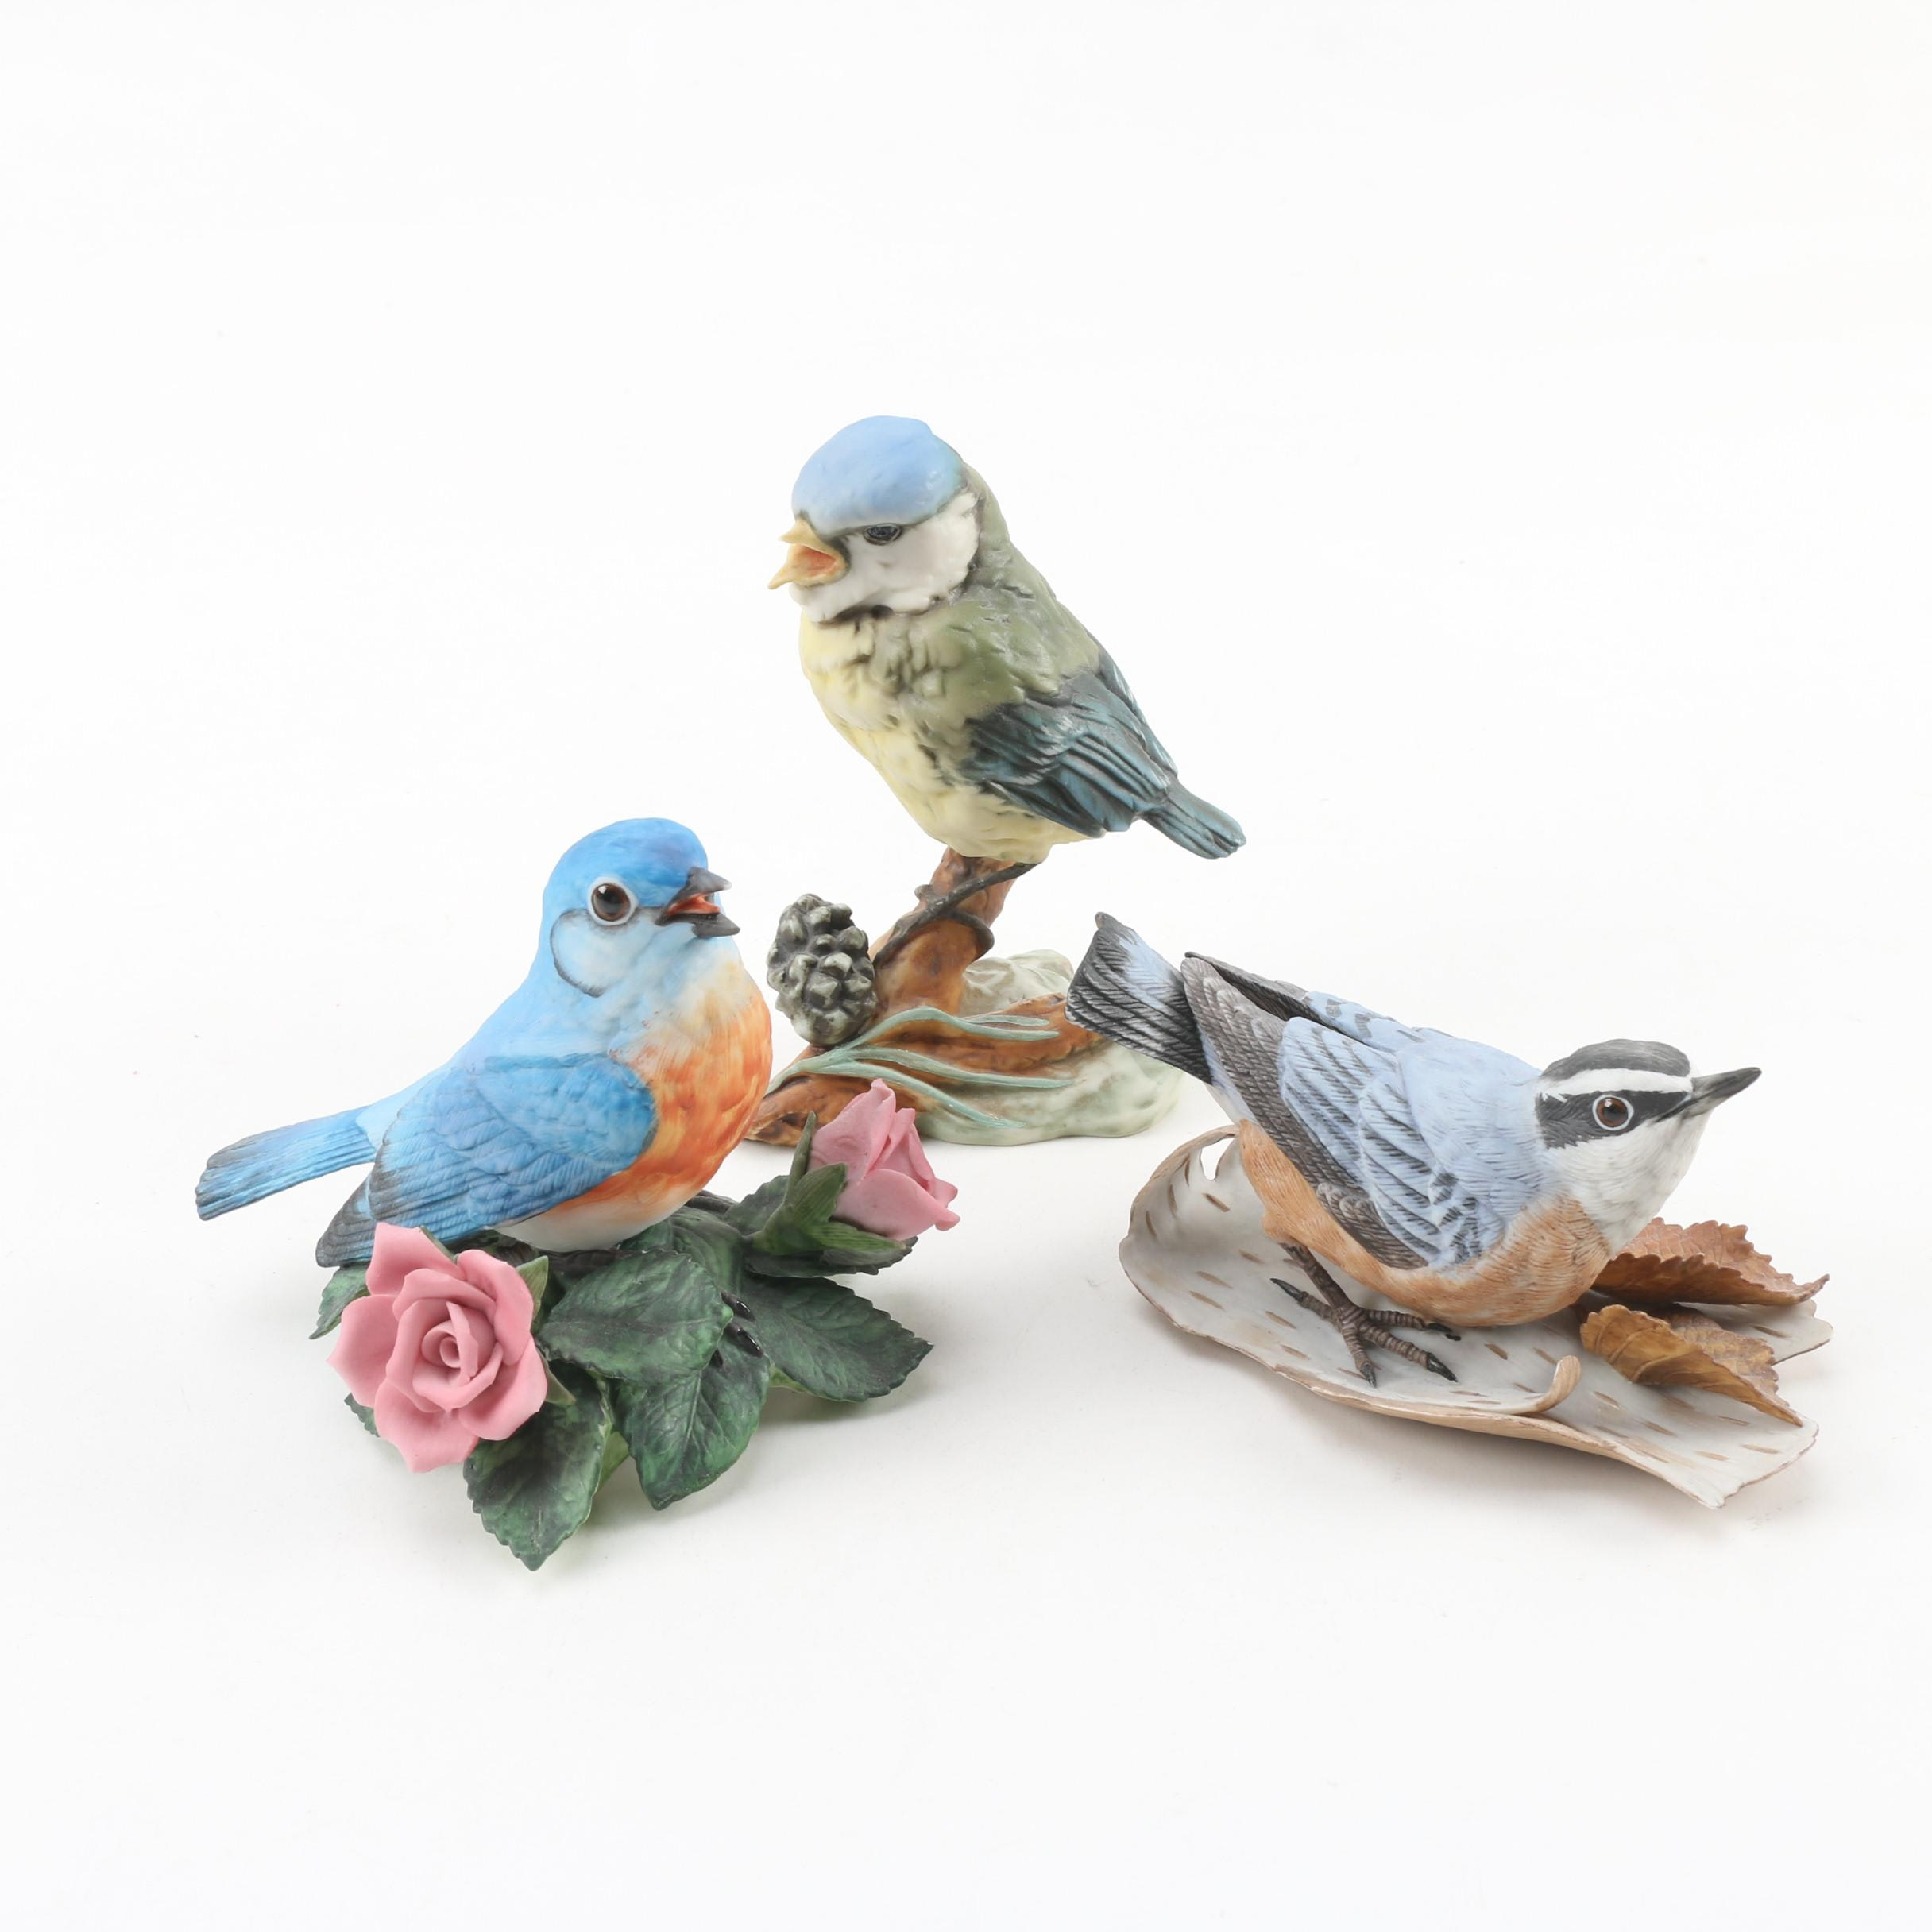 Lenox and Kaiser Hand-Painted Porcelain Bird Figurines